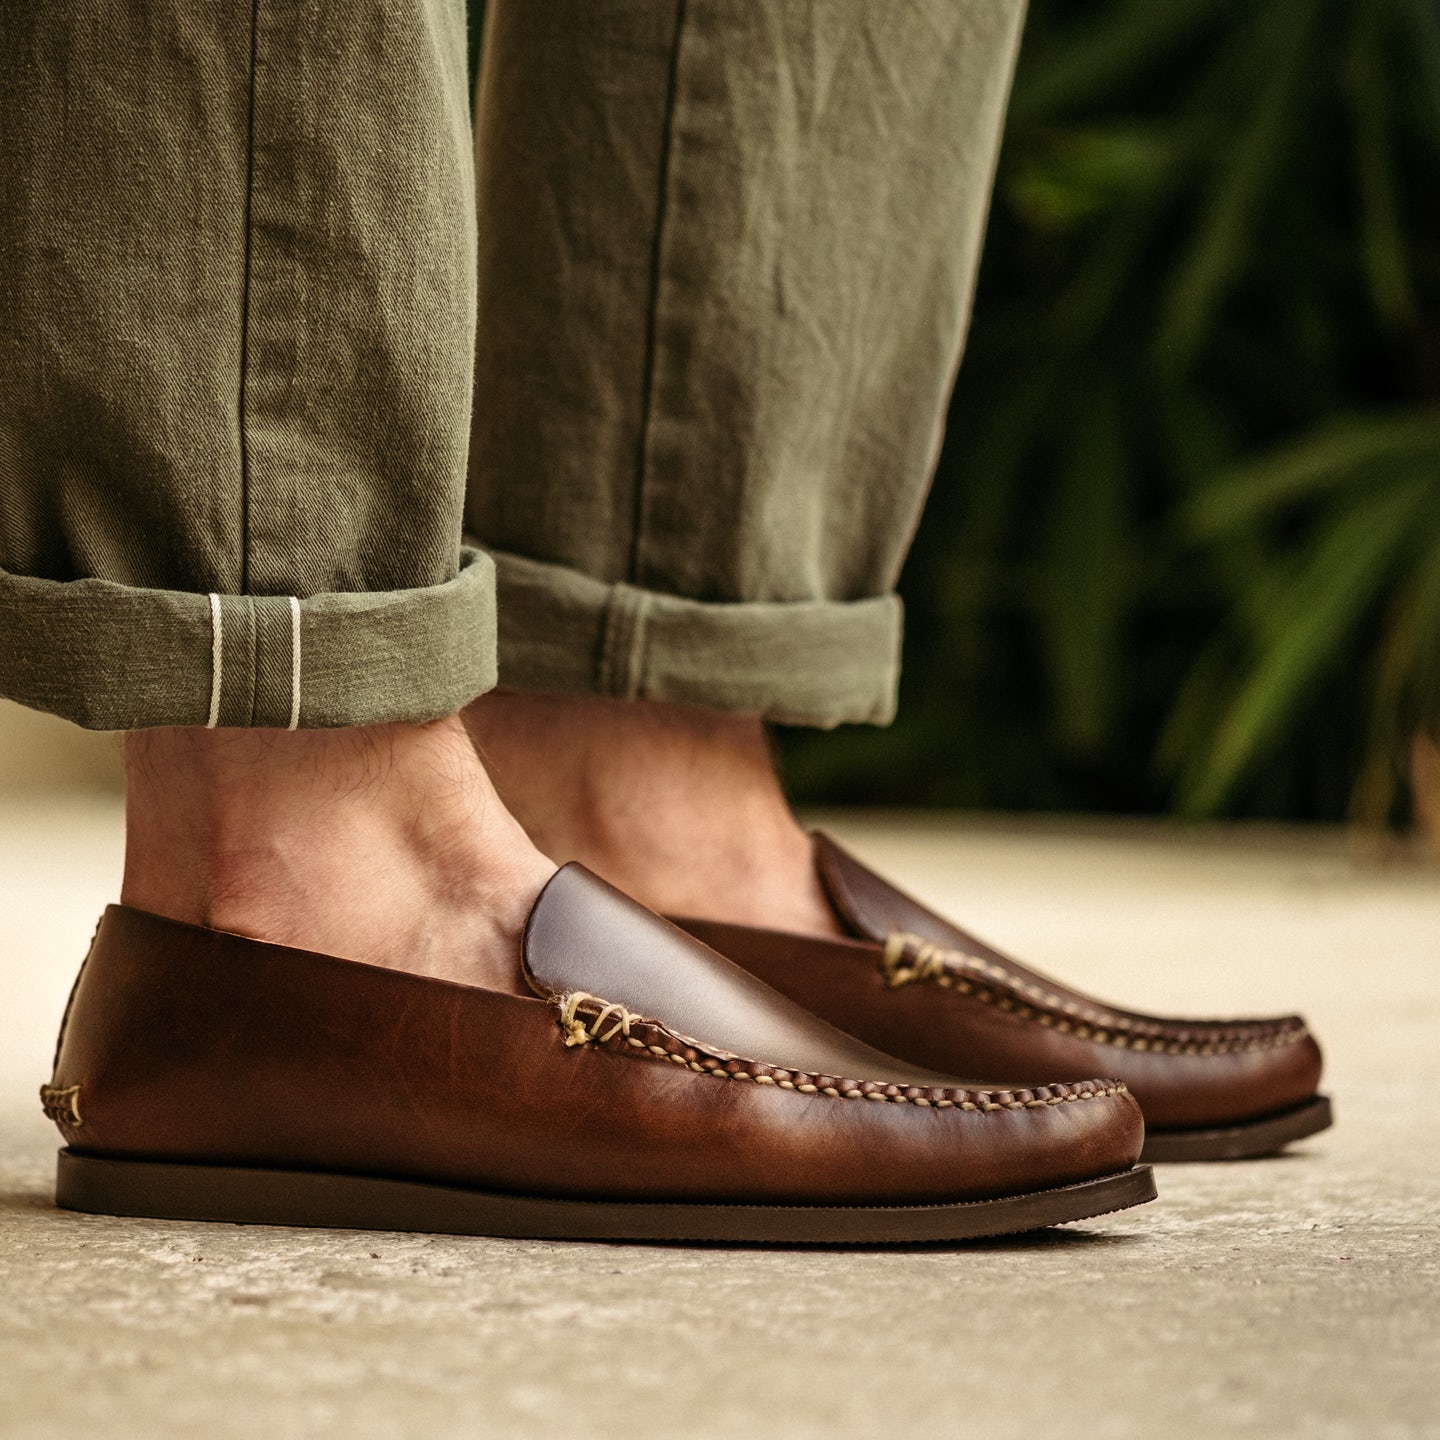 Slip Moc - Brown 12oz Chromexcel, Camp Sole - Made in USA